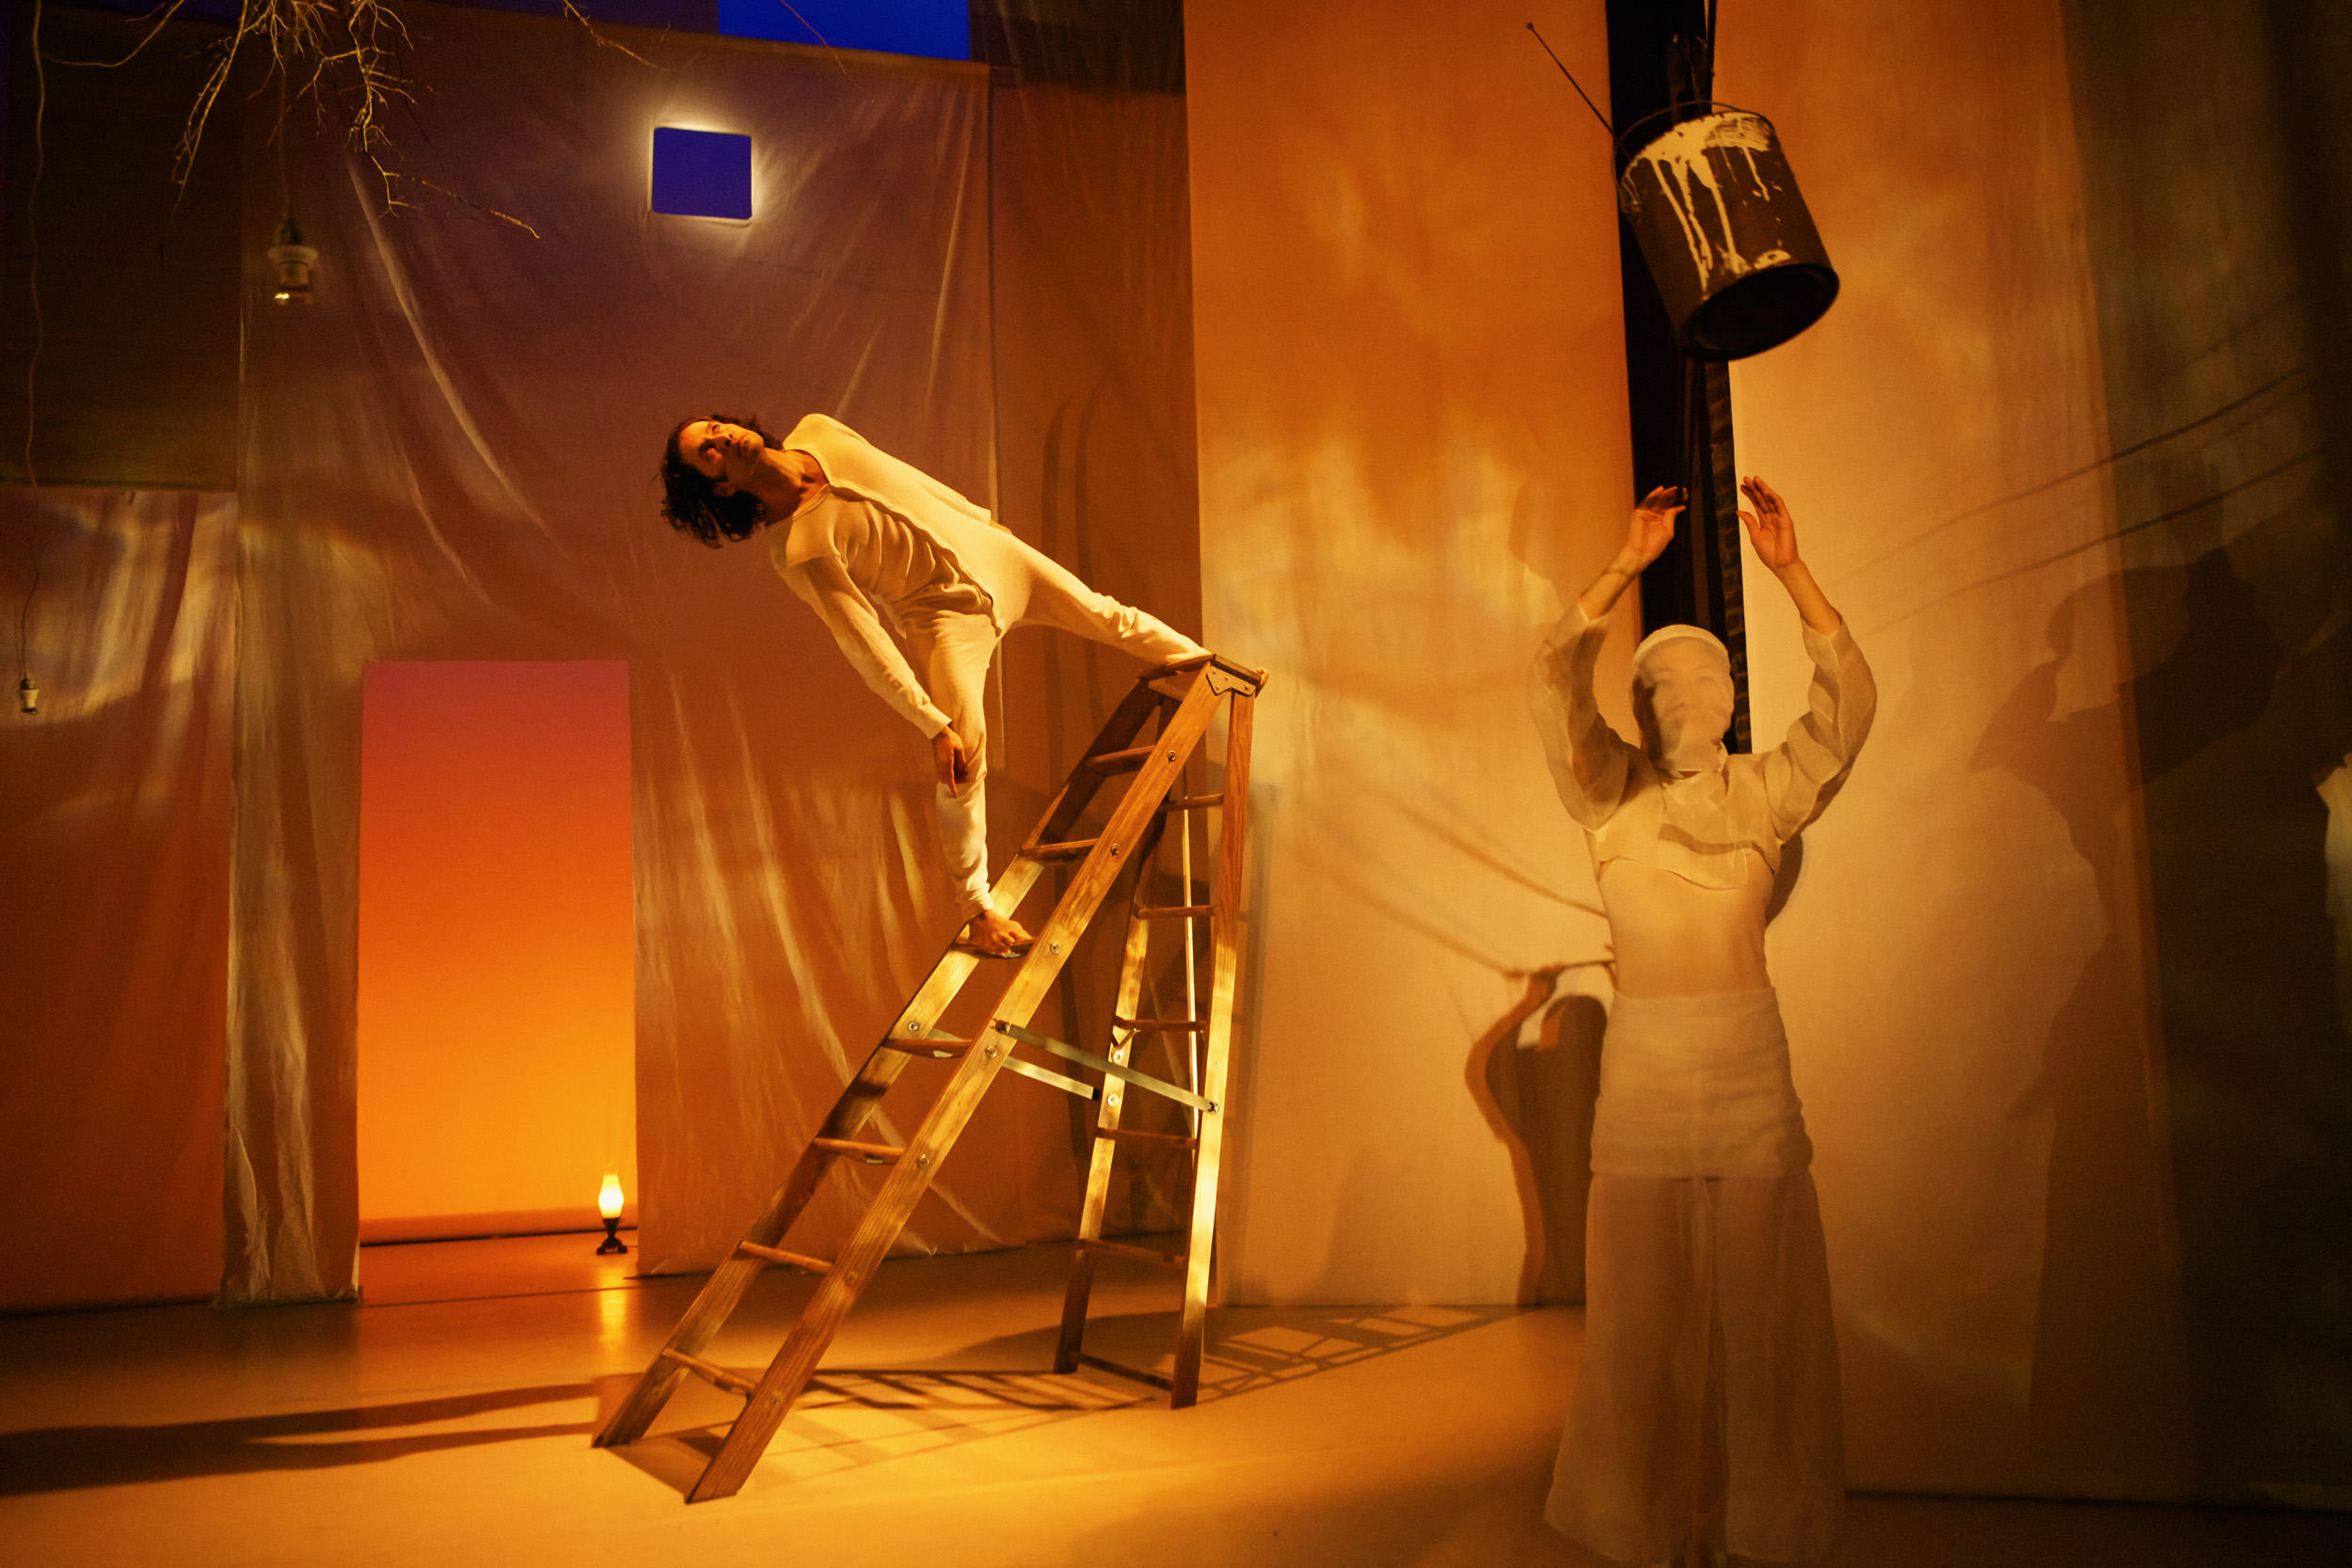 line-between-inkboat-odc-theater-allen-willner-lighting-ladder.jpg